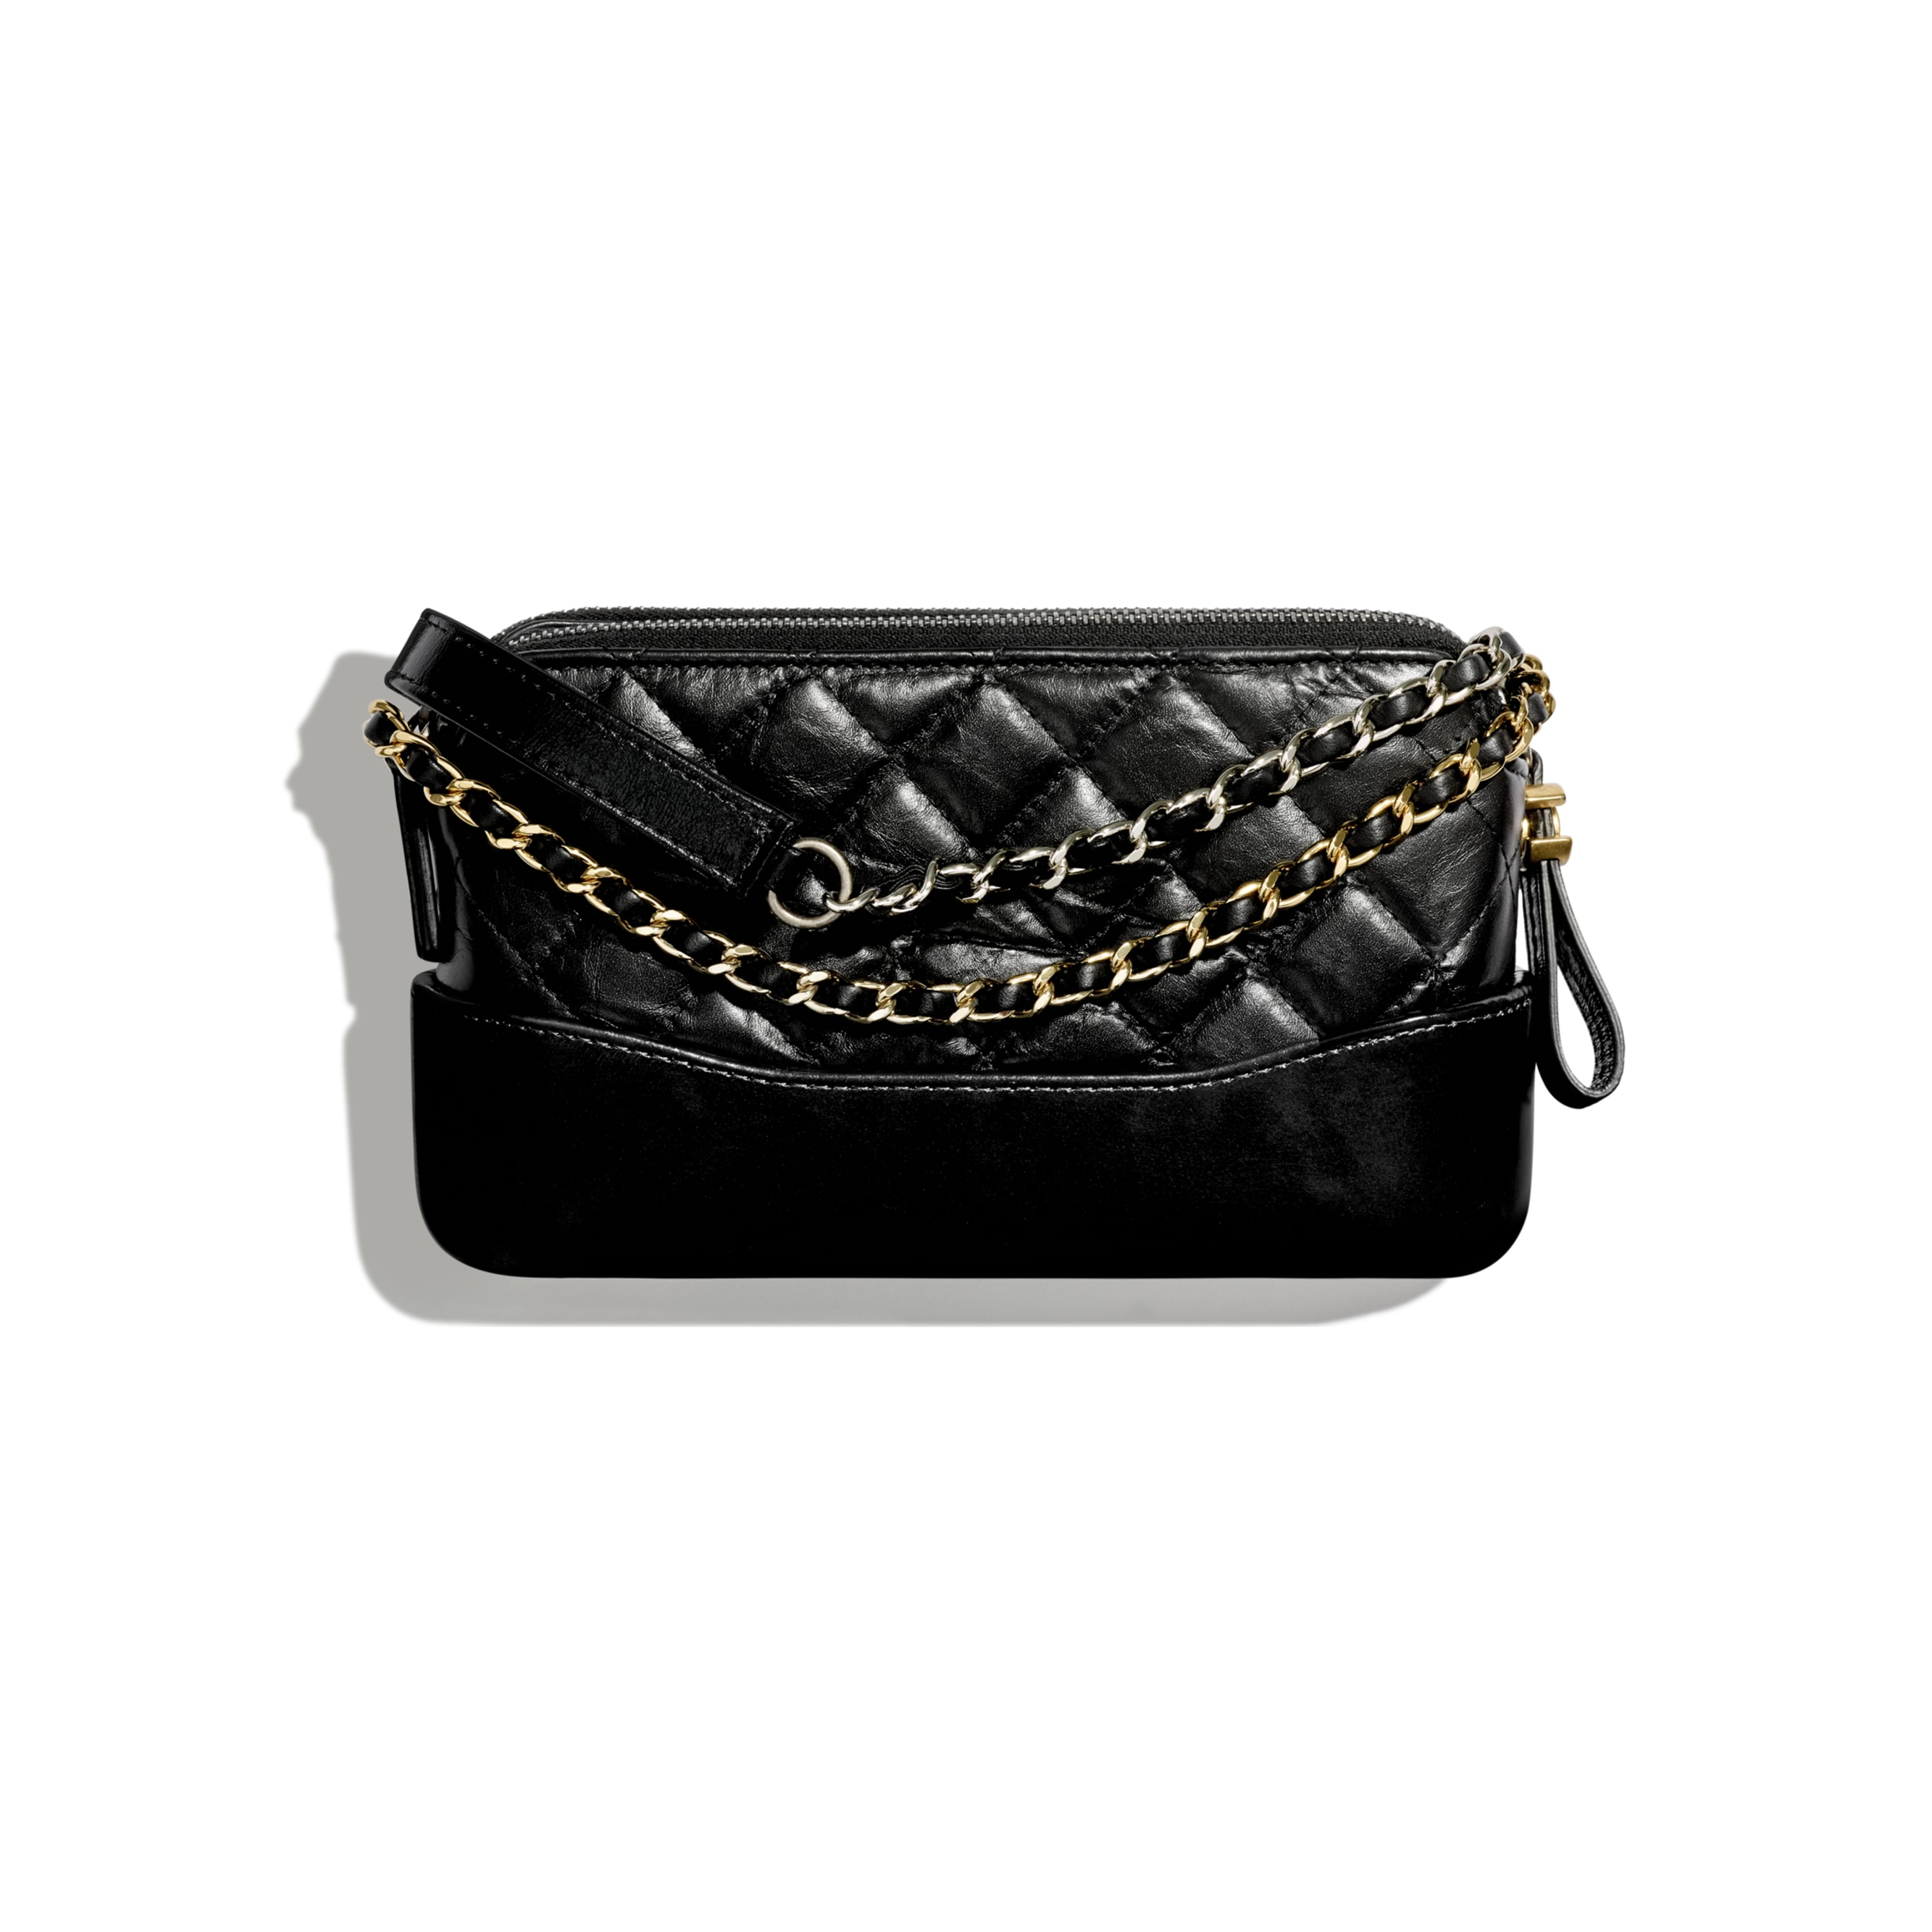 Clutch With Chain - Black - Aged Calfskin, Smooth Calfskin, Gold-Tone, Silver-Tone & Ruthenium-Finish Metal - CHANEL - Alternative view - see standard sized version